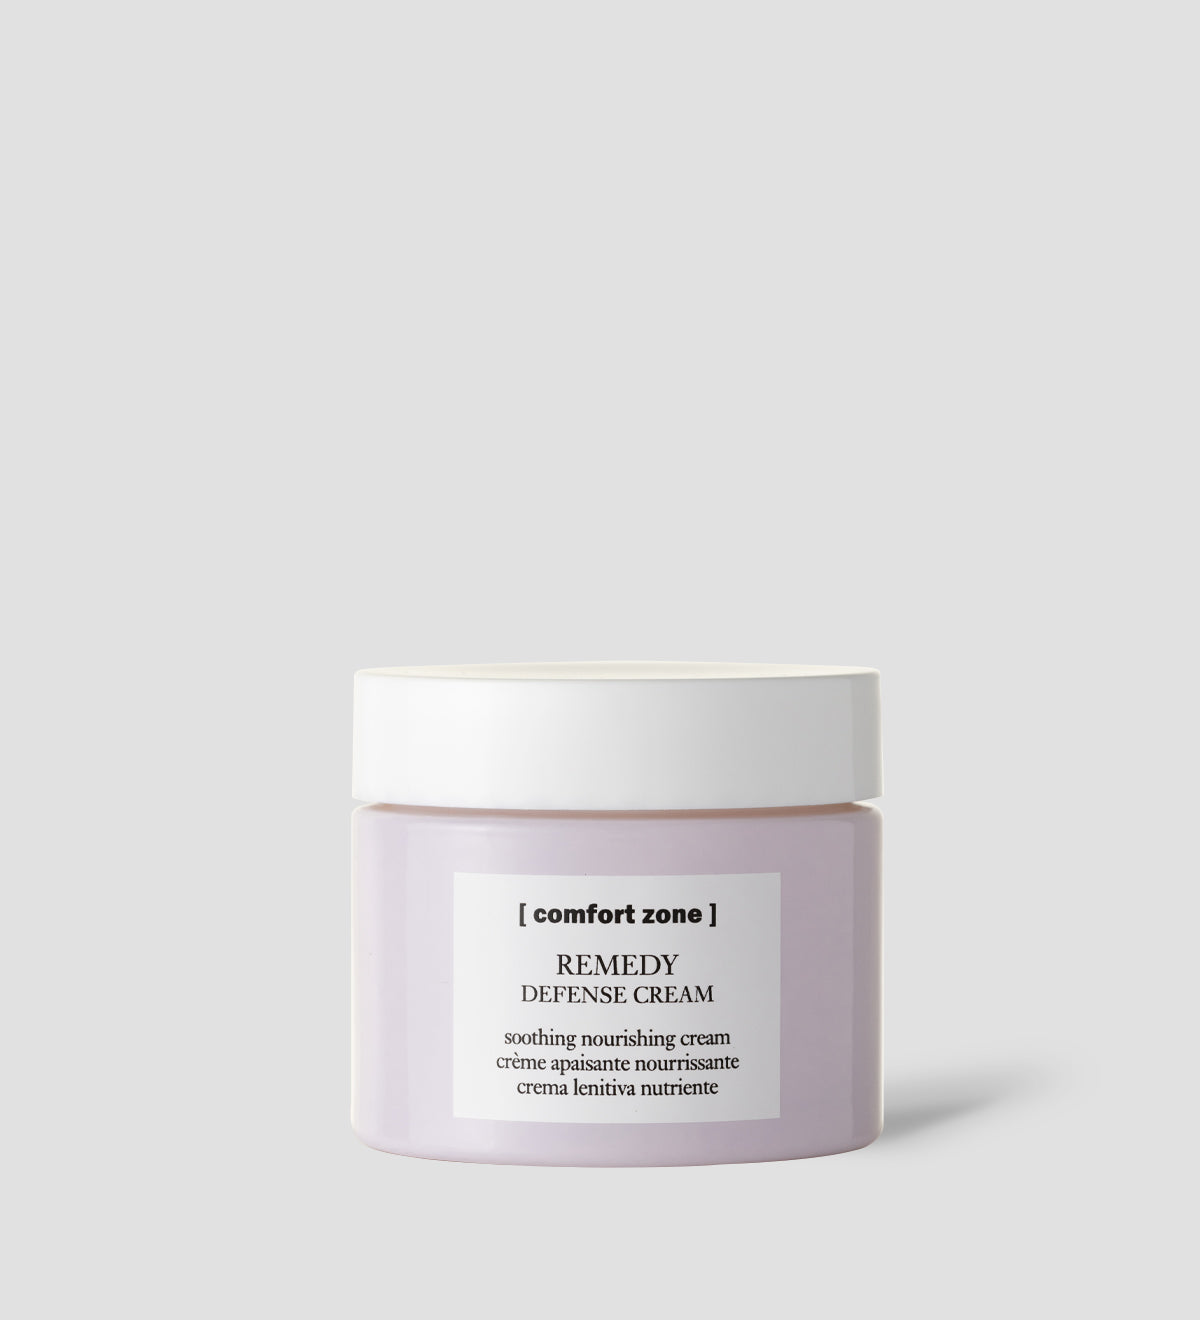 DEFENSE CREAM 1  60 mlDavines